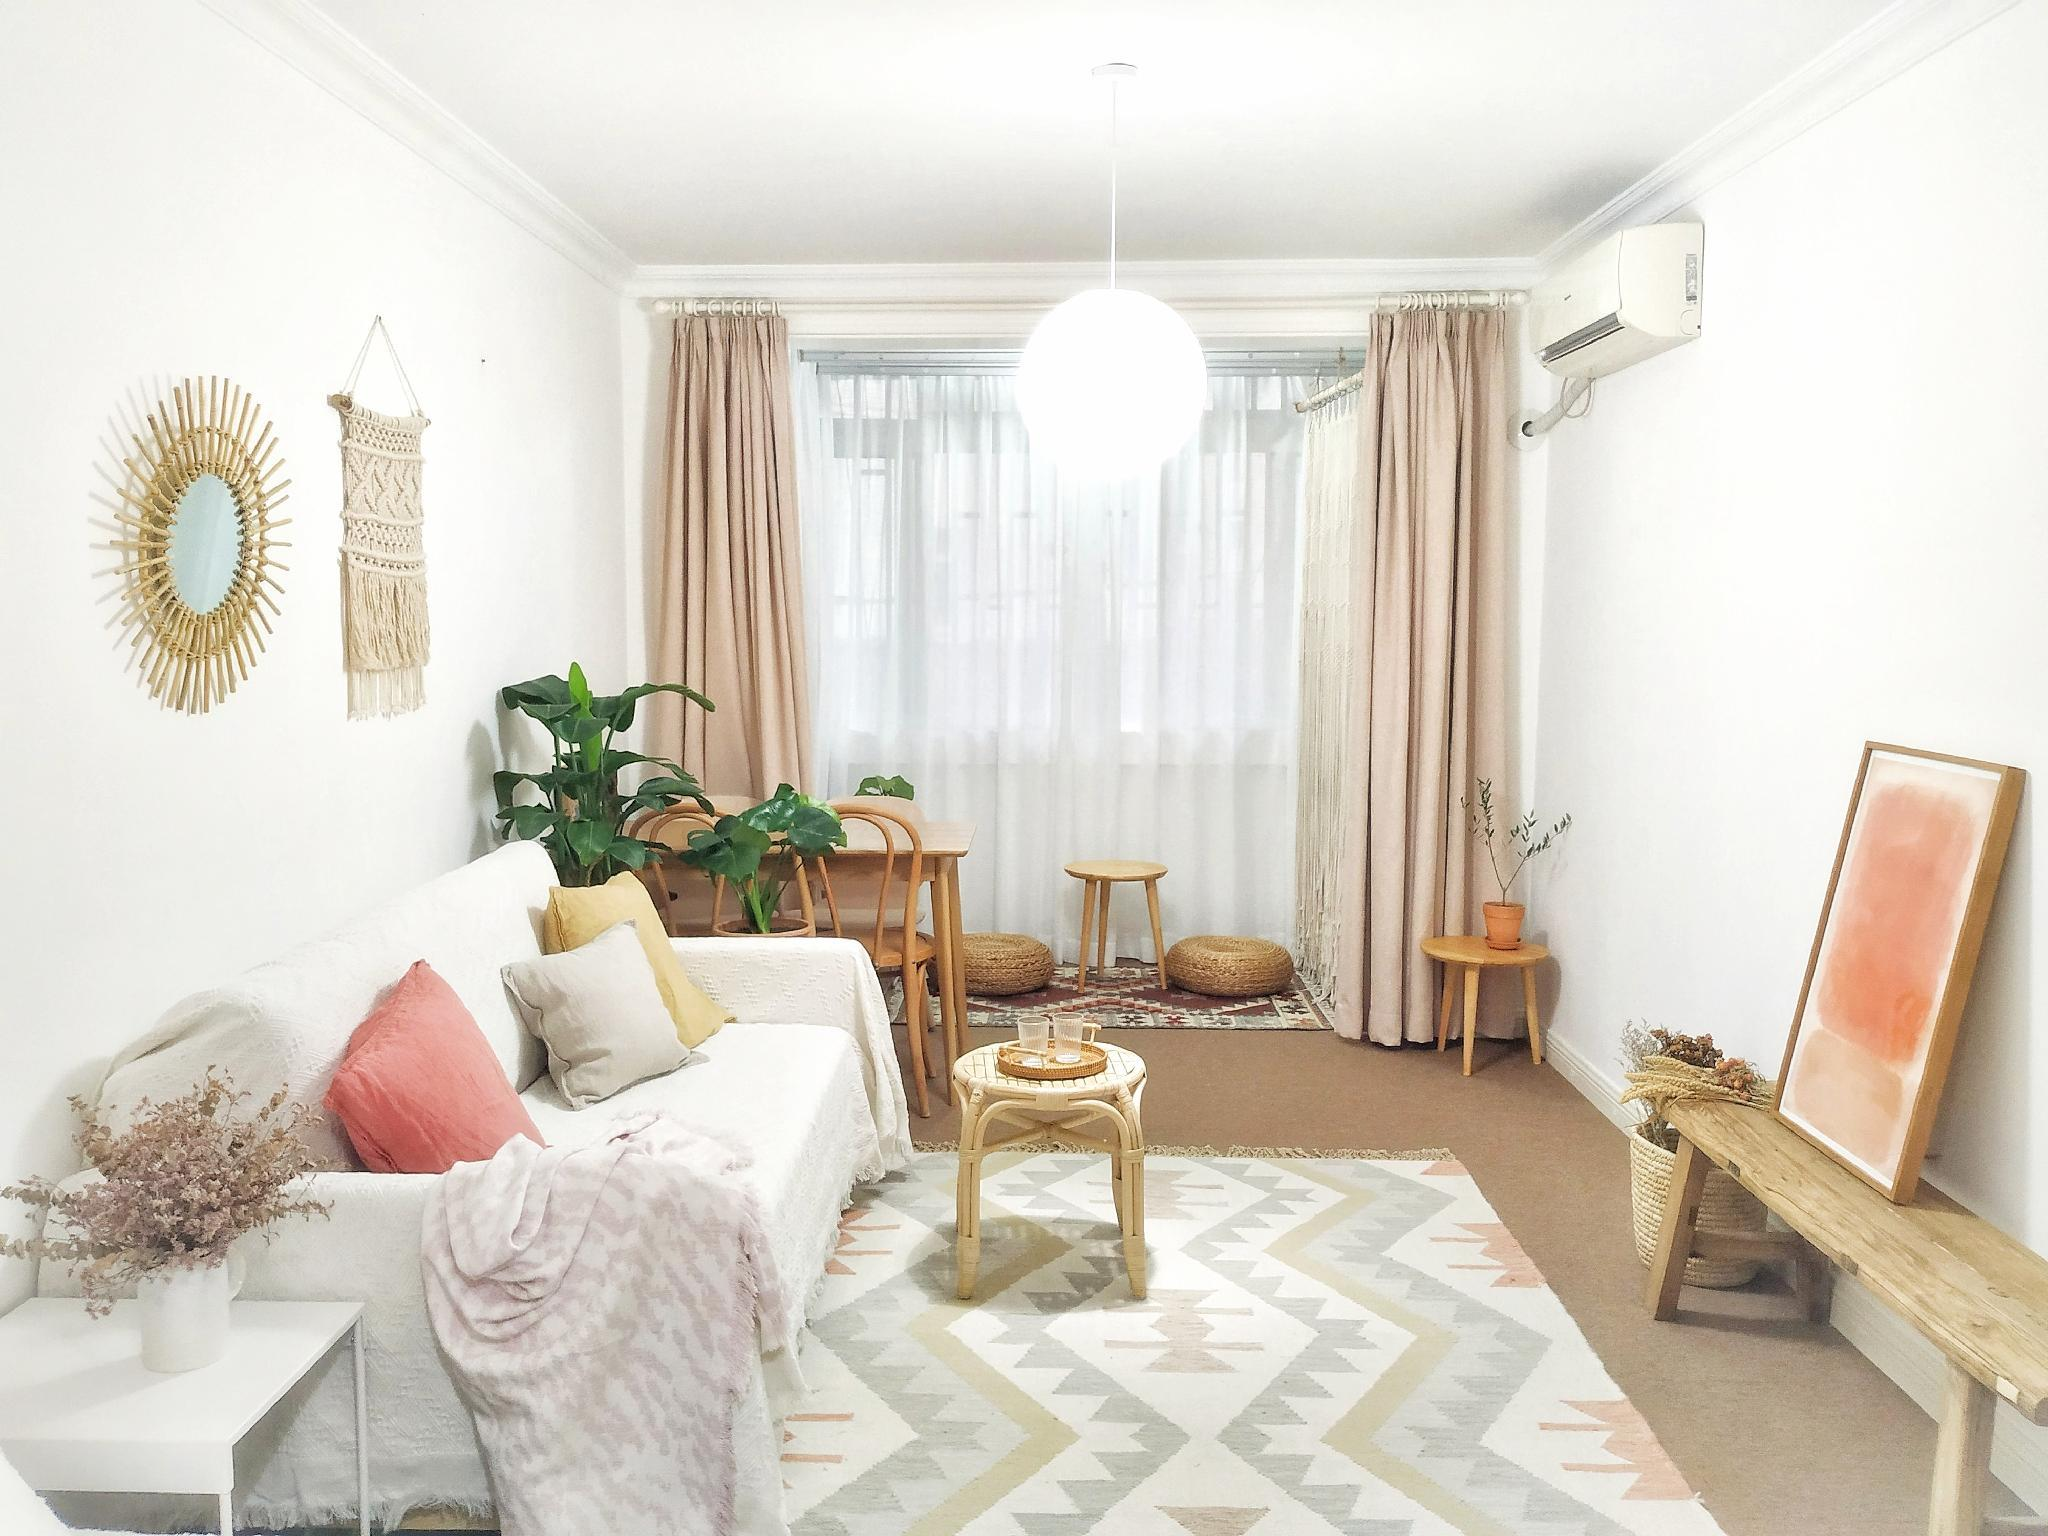 Reviews Cozy Bohemian Style Apartment with King Size Bed